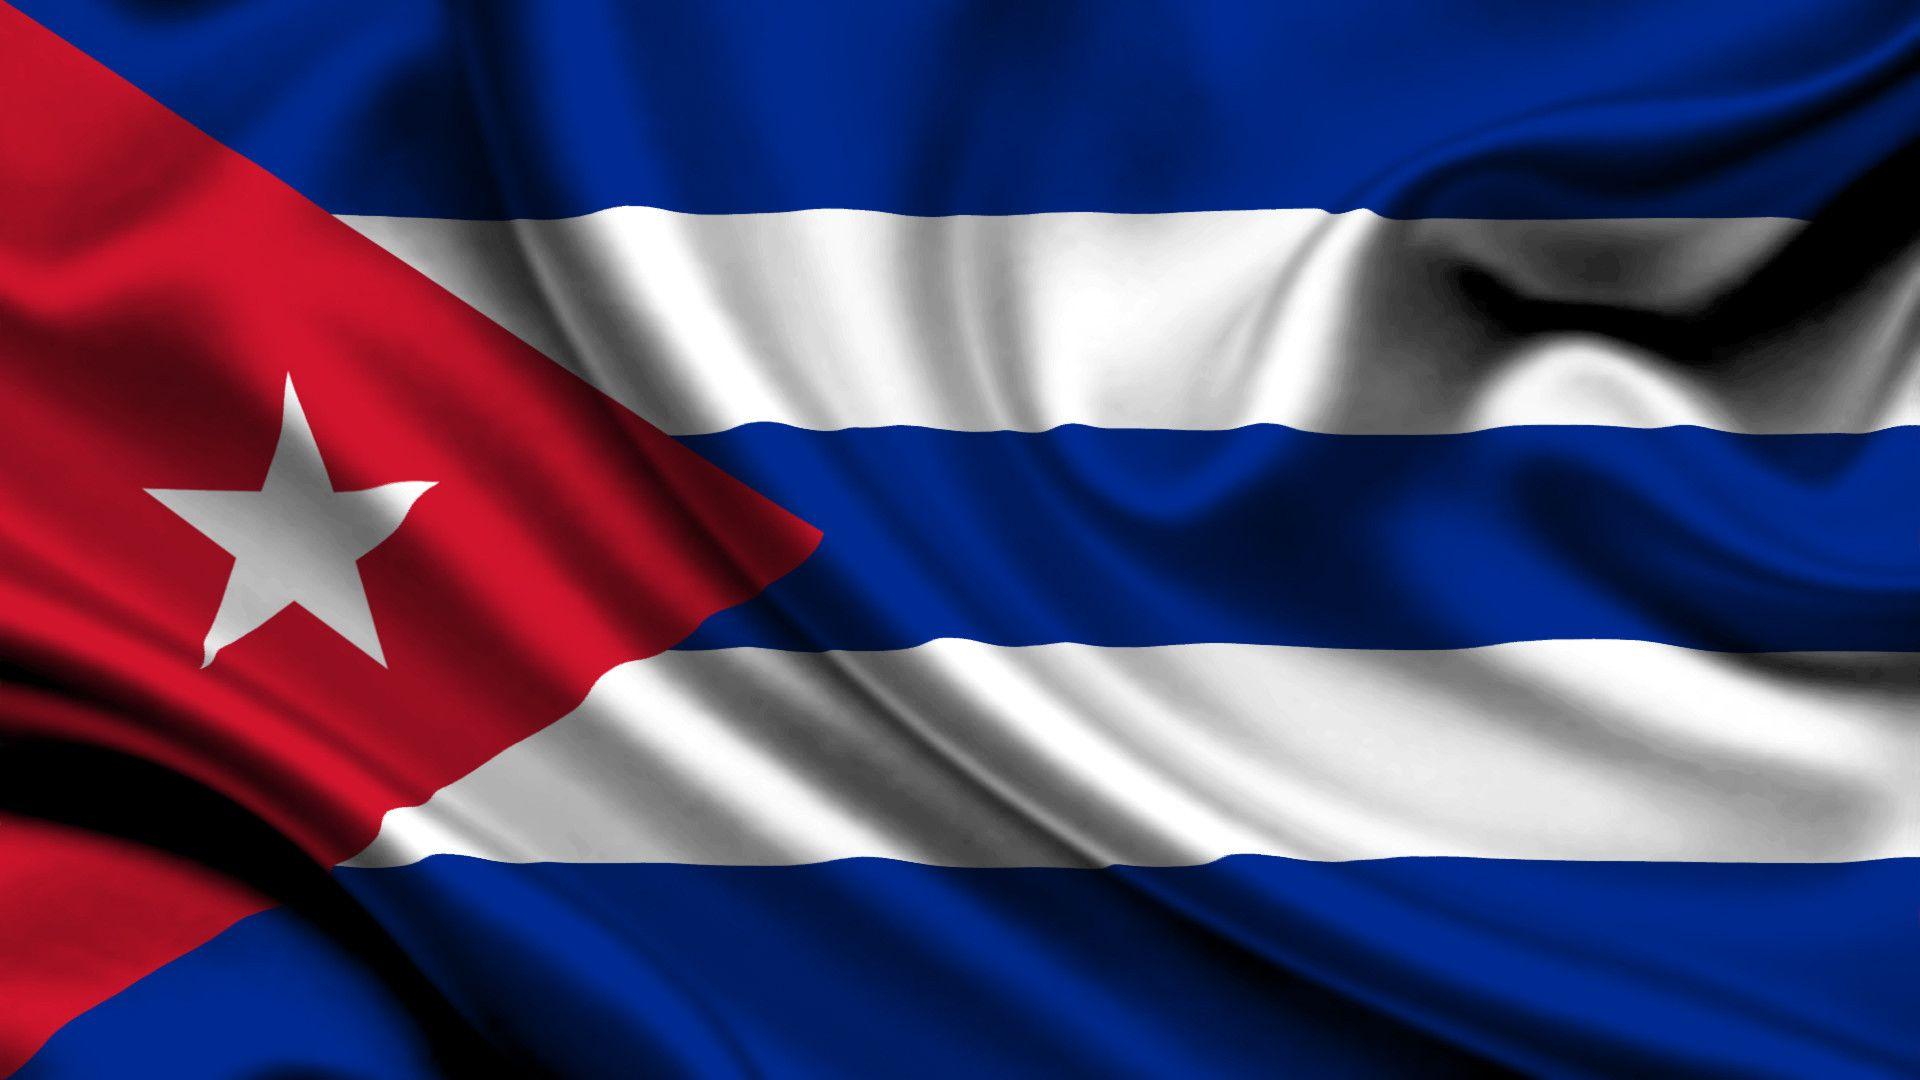 Twitter censors official accounts of Cuban medias